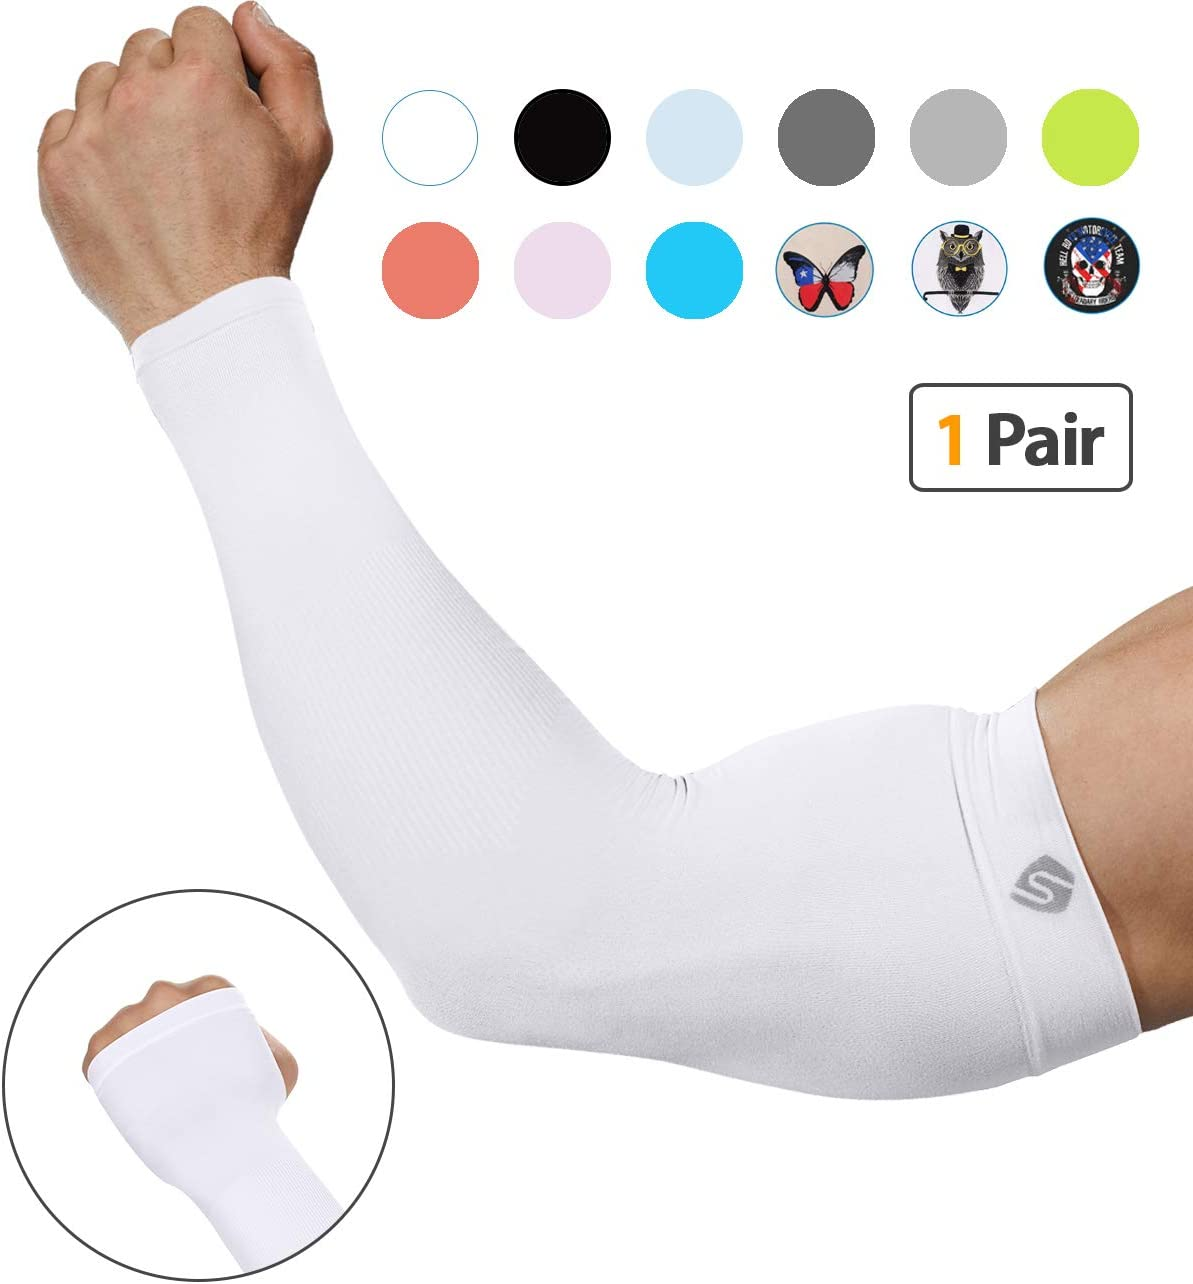 UV Protection-1 Pair SHINYMOD Arm Sleeves UV Protection Cooling Sleeves for Men and Women Original Silk-Screen Pattern Sports Compression Sleeves for Baseball Basketball Football Cycling with UPF 50